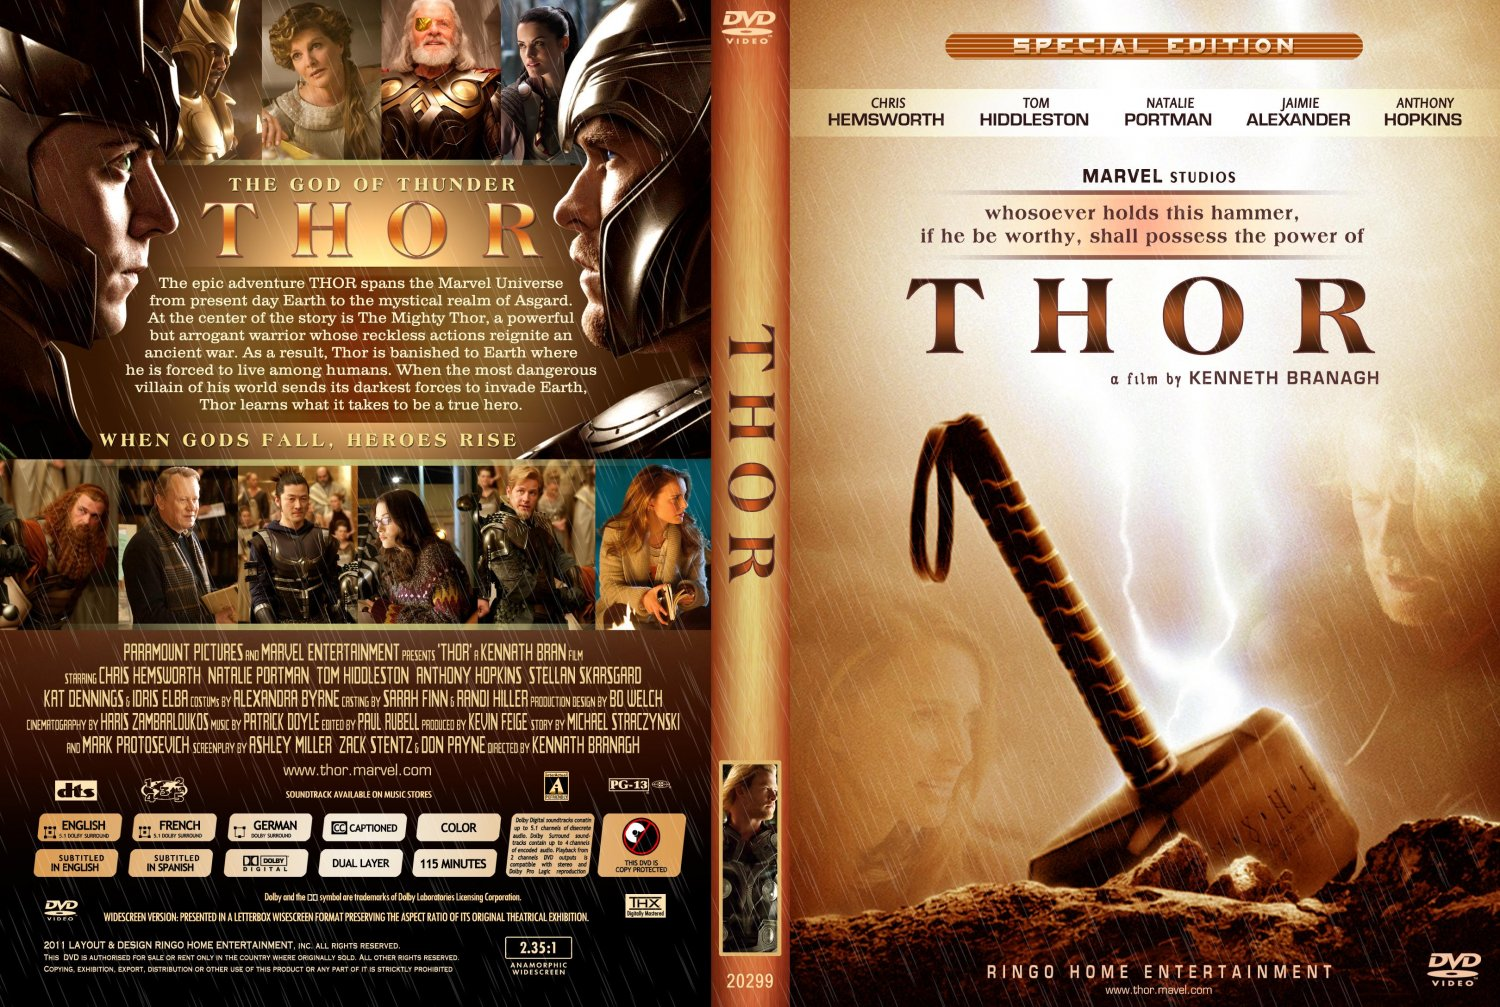 ... Movie DVD Custom Covers - Copy of Thor DVD Cover 2011 :: DVD Covers